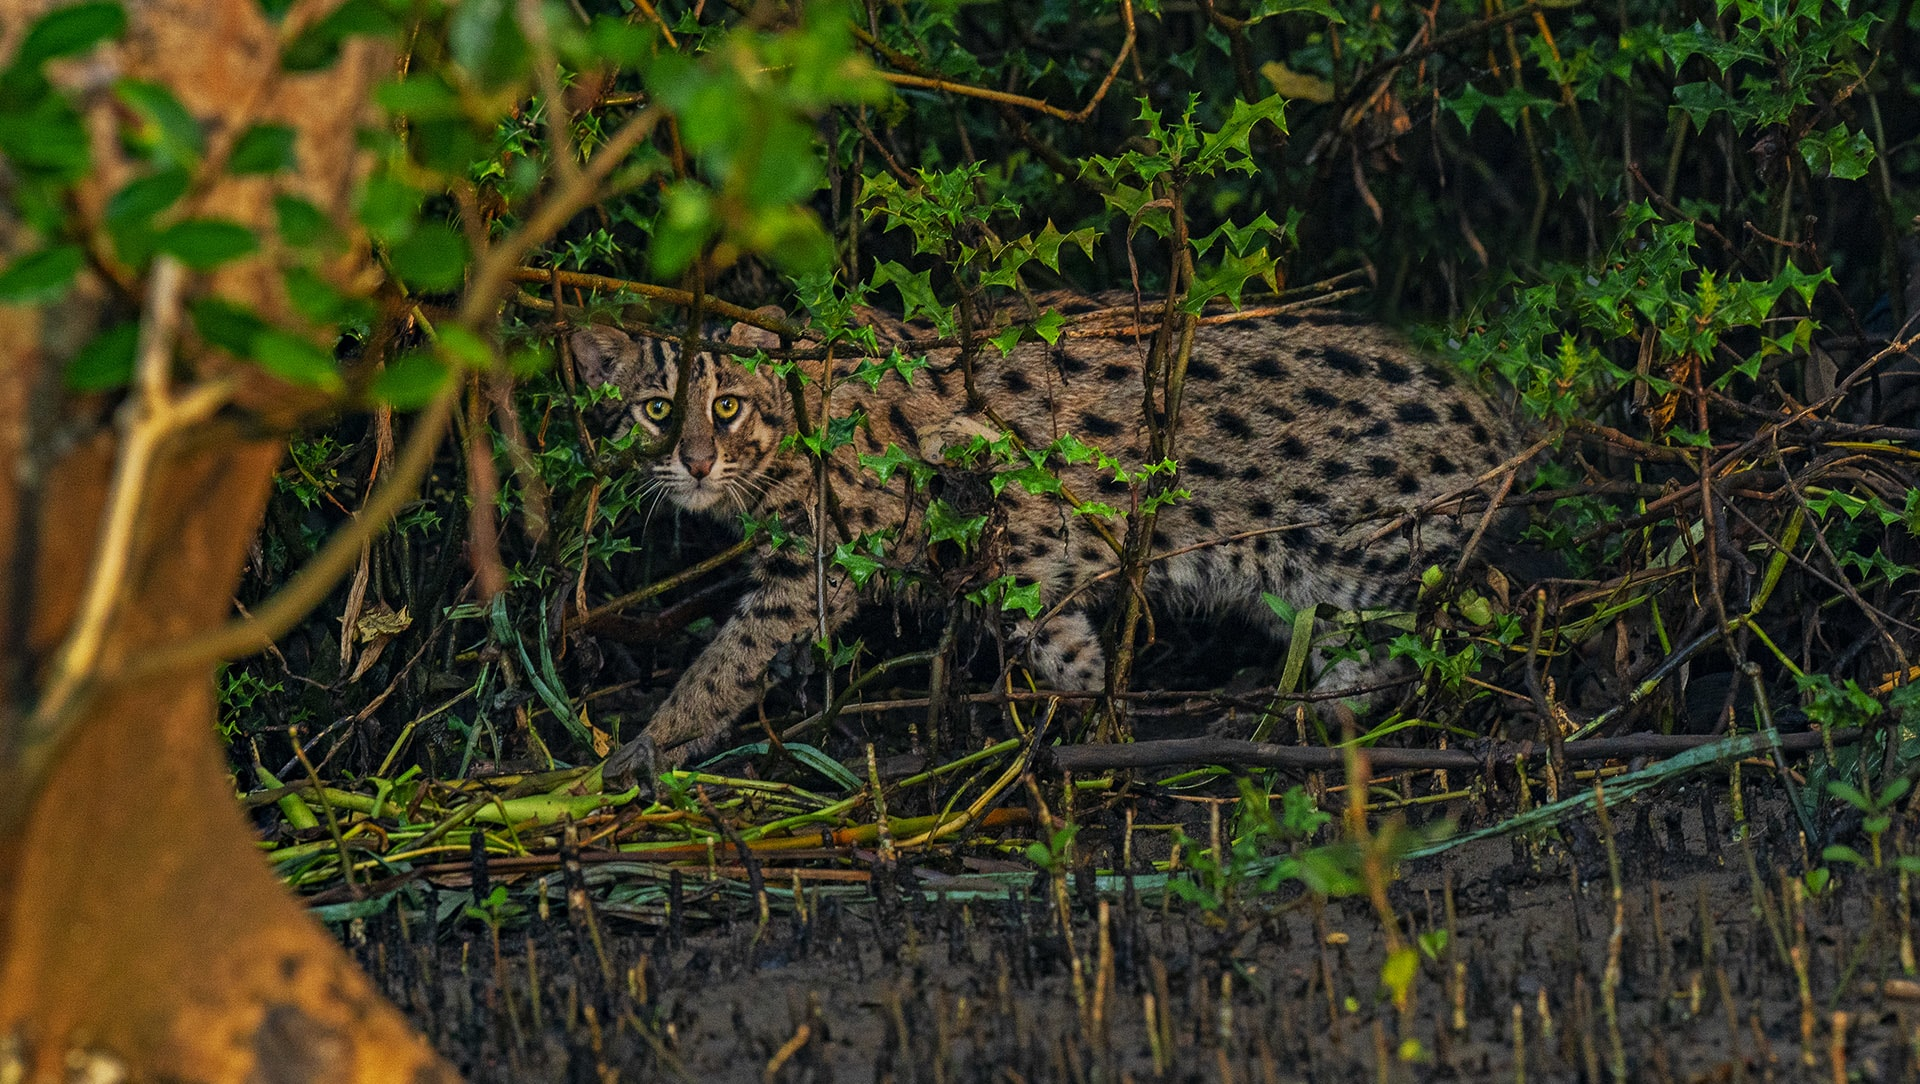 Hunter Among the Mangroves: The Fishing Cats of Coringa